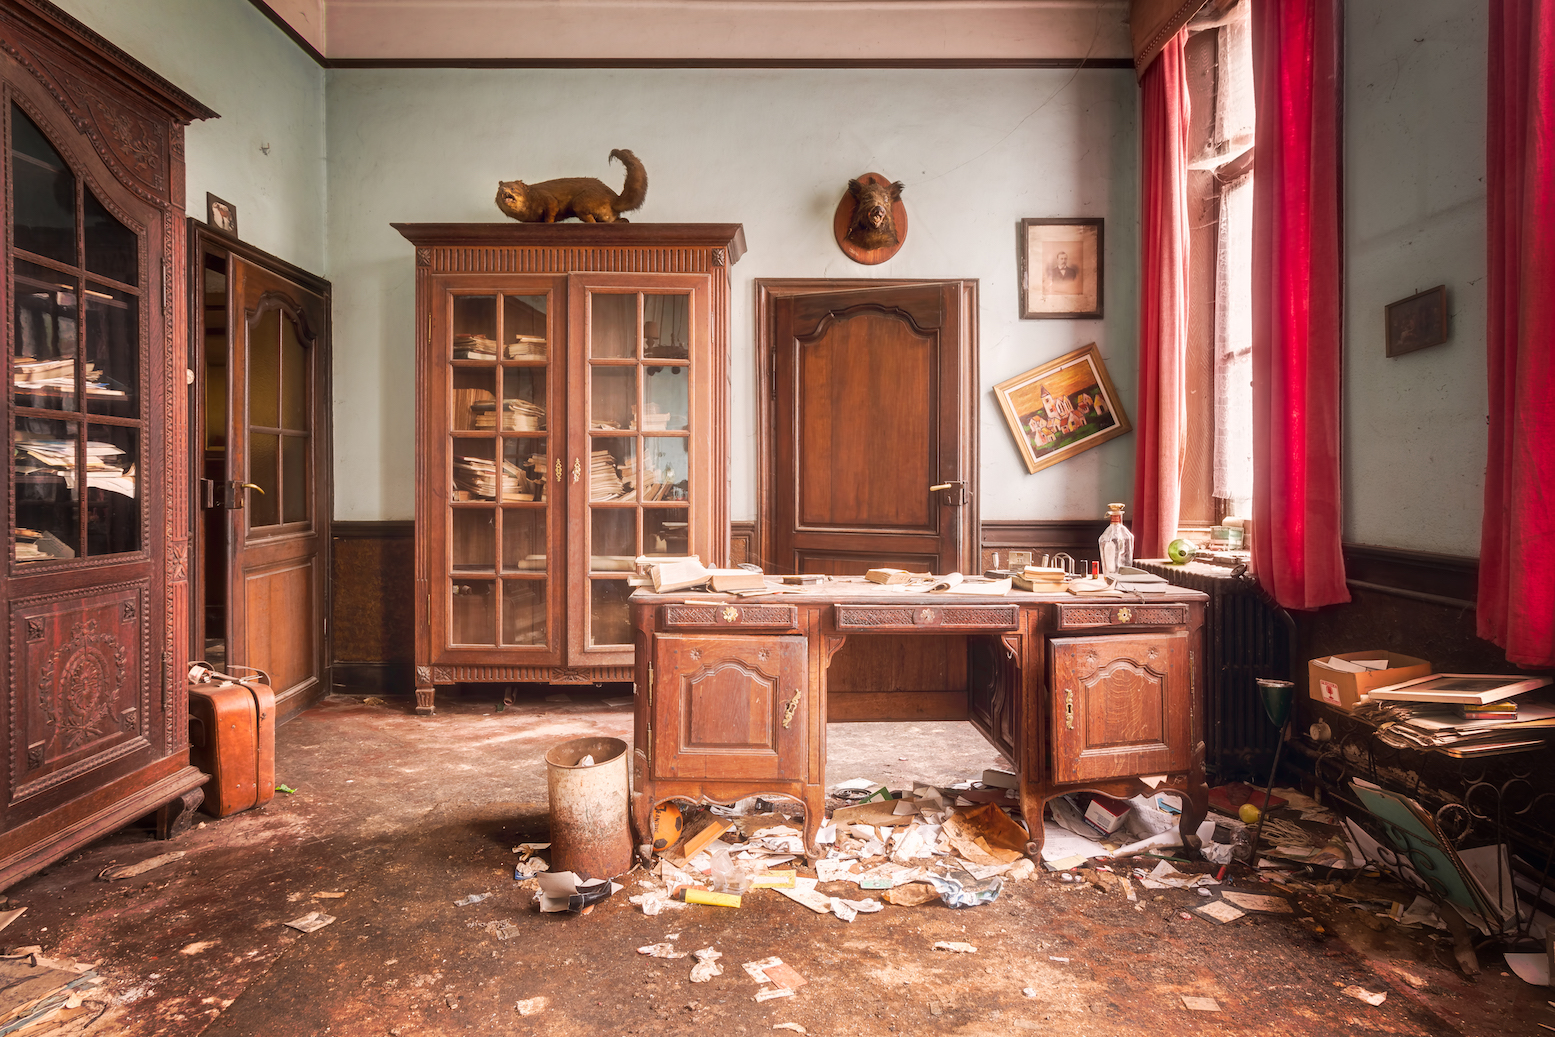 Office Urban Photography By Roman Robroek